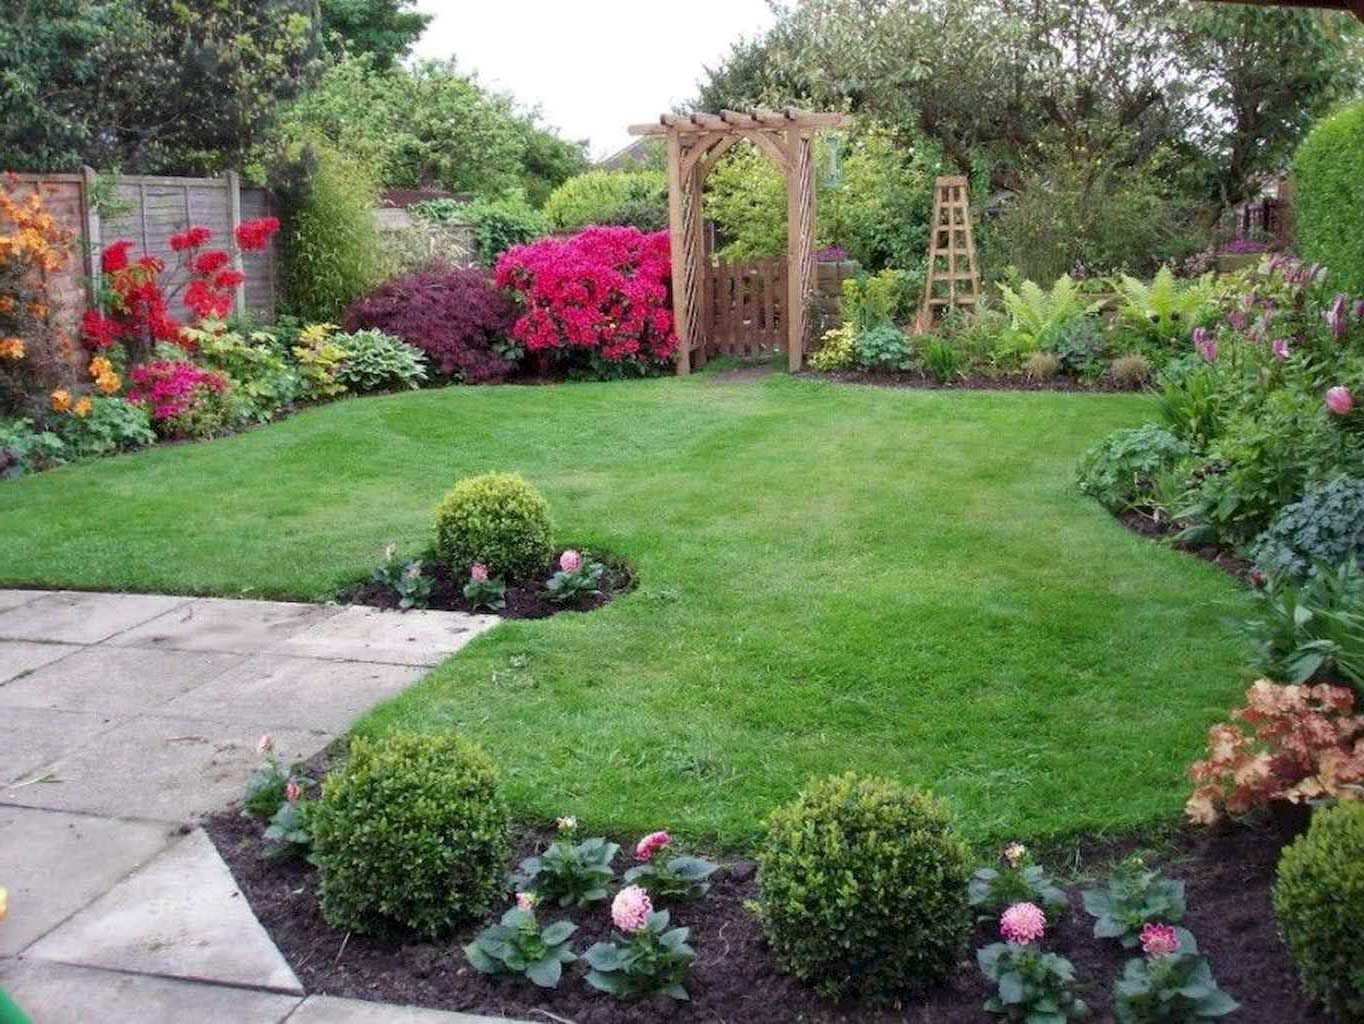 85 gorgeous backyard landscaping with rocks ideas in 2020 on gorgeous small backyard landscaping ideas id=96376